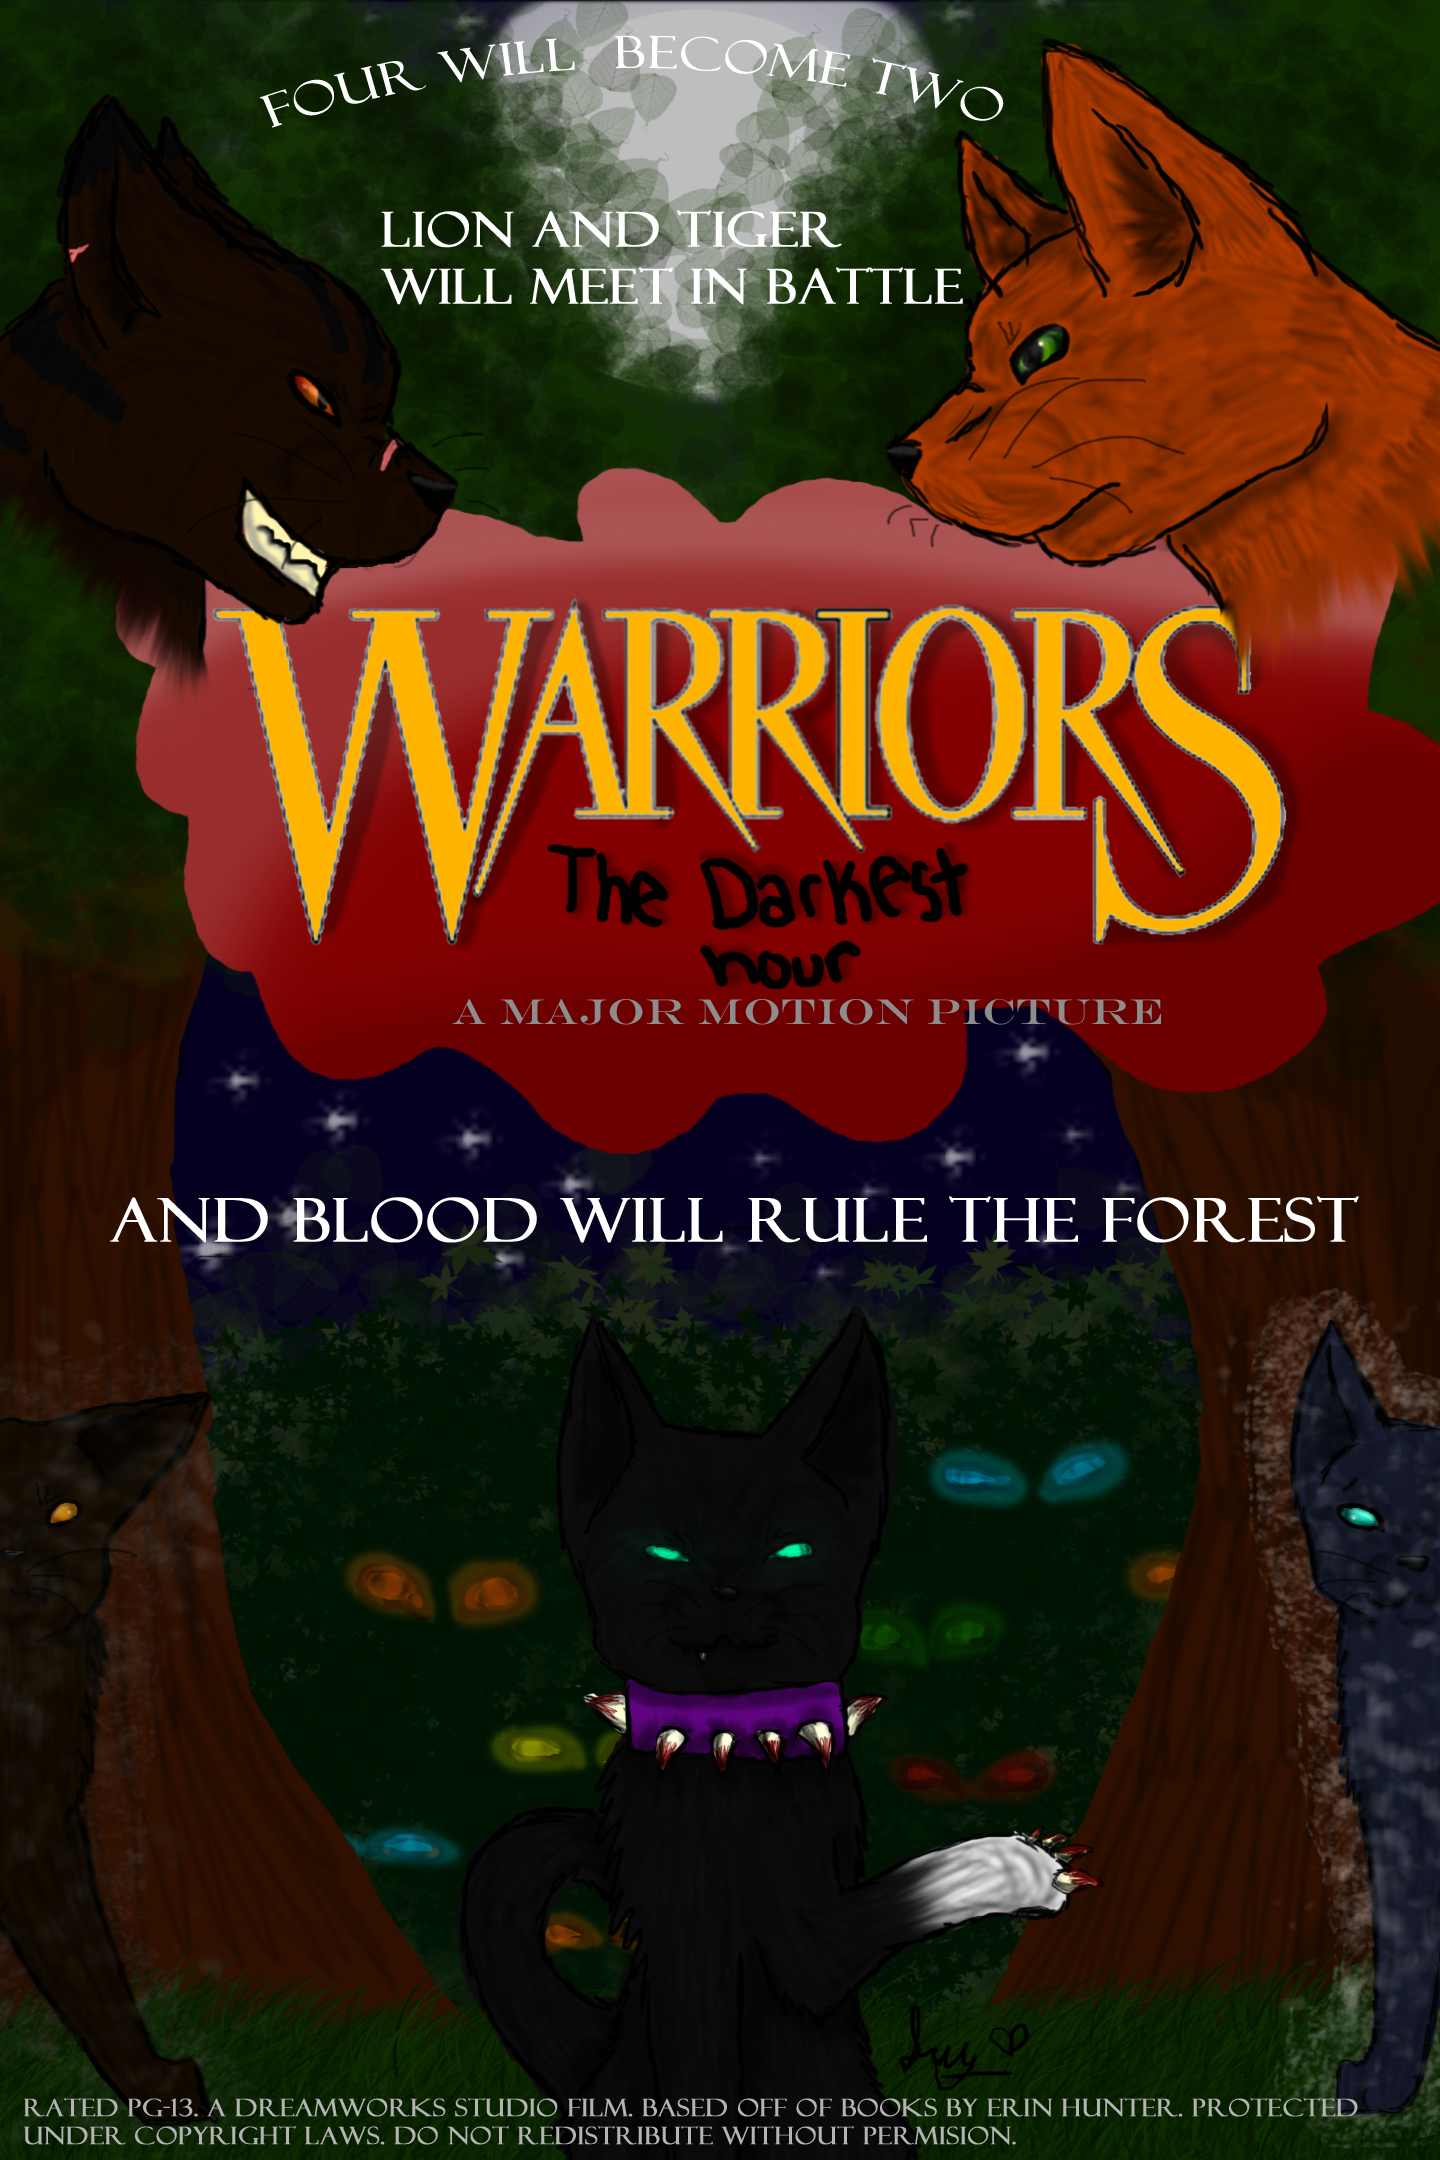 Warrior cats movie poster